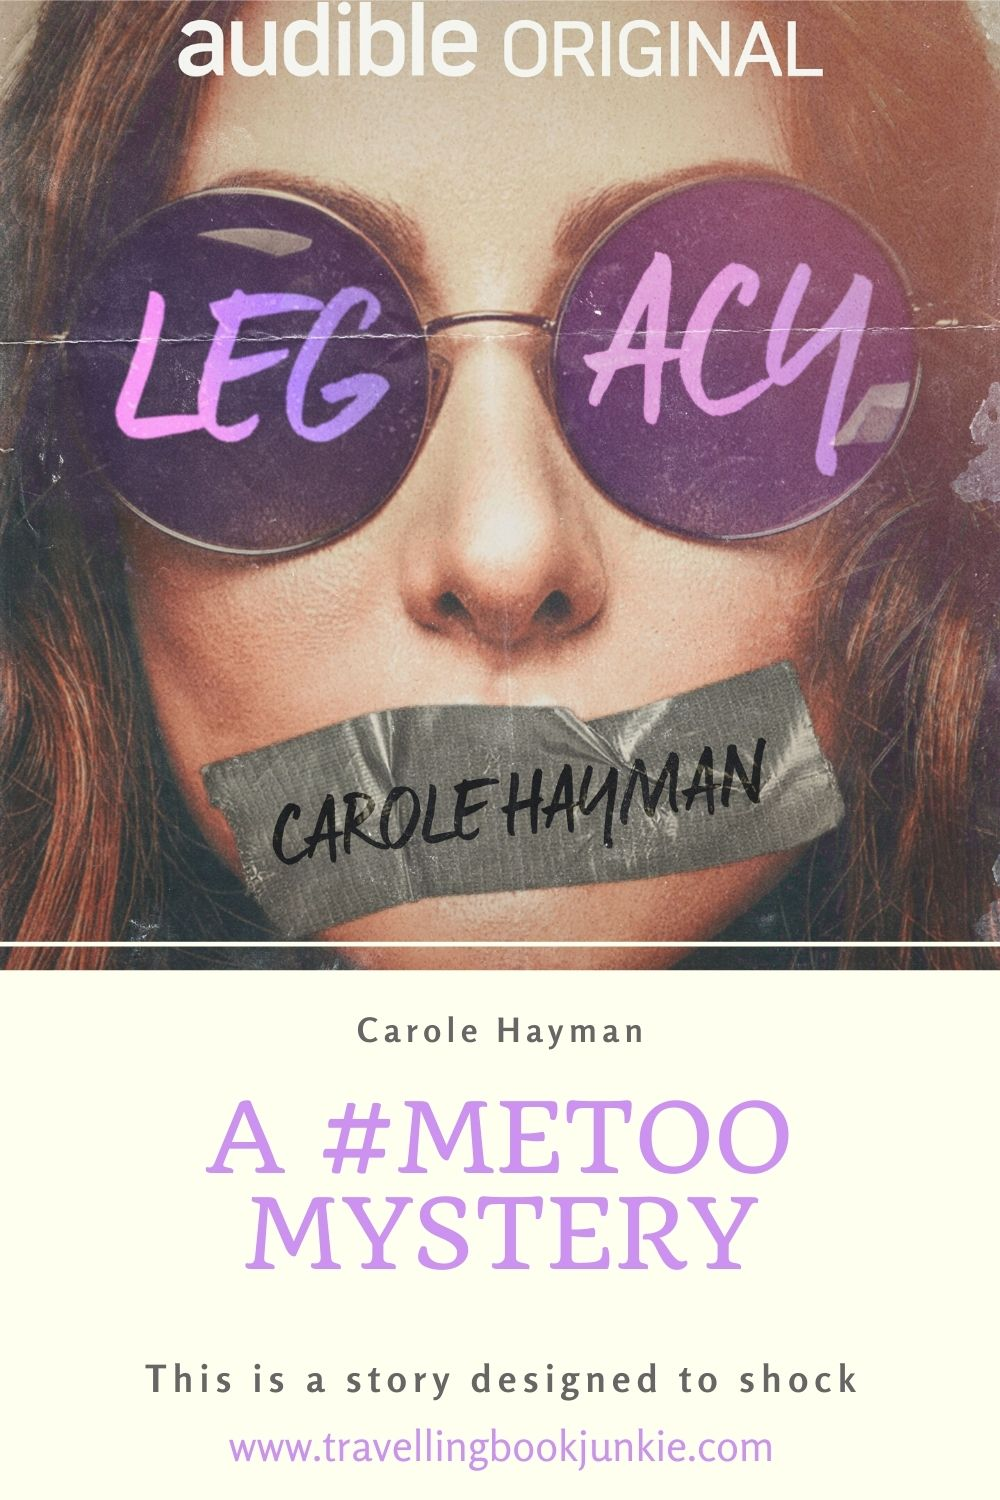 Legacy is a #metoo crime novel that focuses on the repression of memories that are affected by sexual harassment and abuse. Read the full review via @tbookjunkie